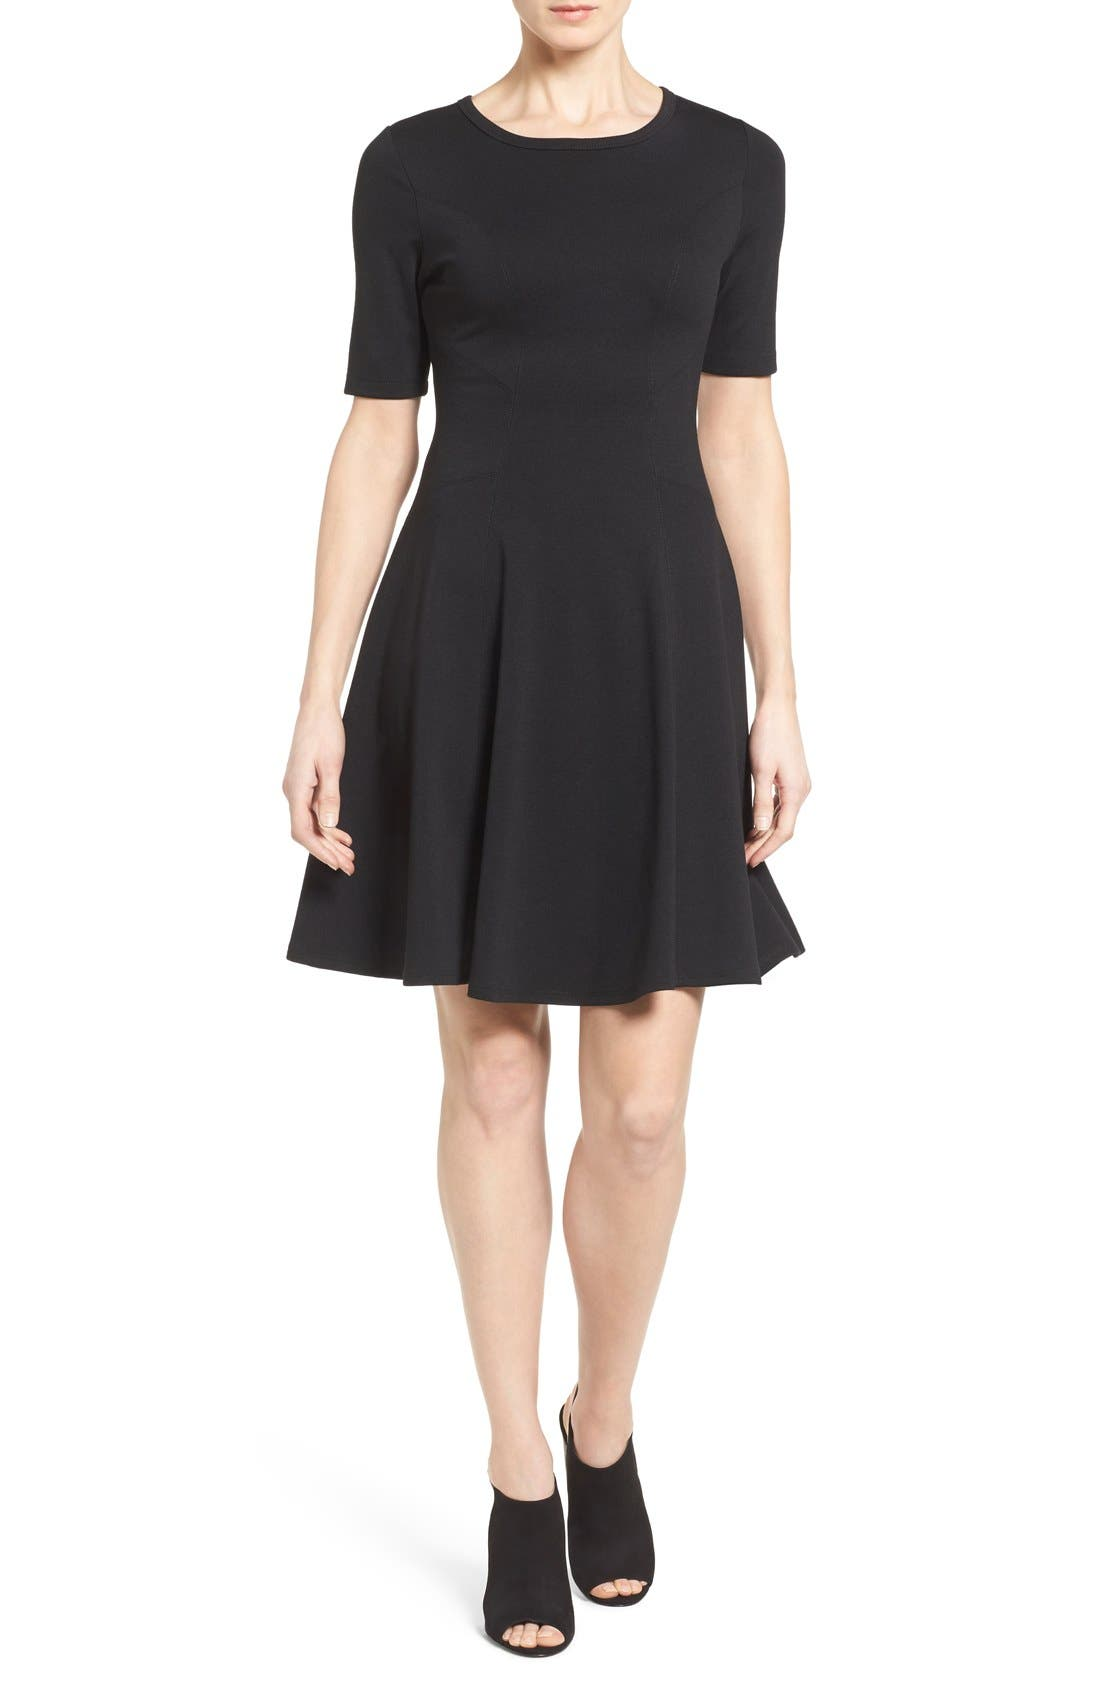 Karen Kane 'Michelle' Short Sleeve Fit & Flare Dress